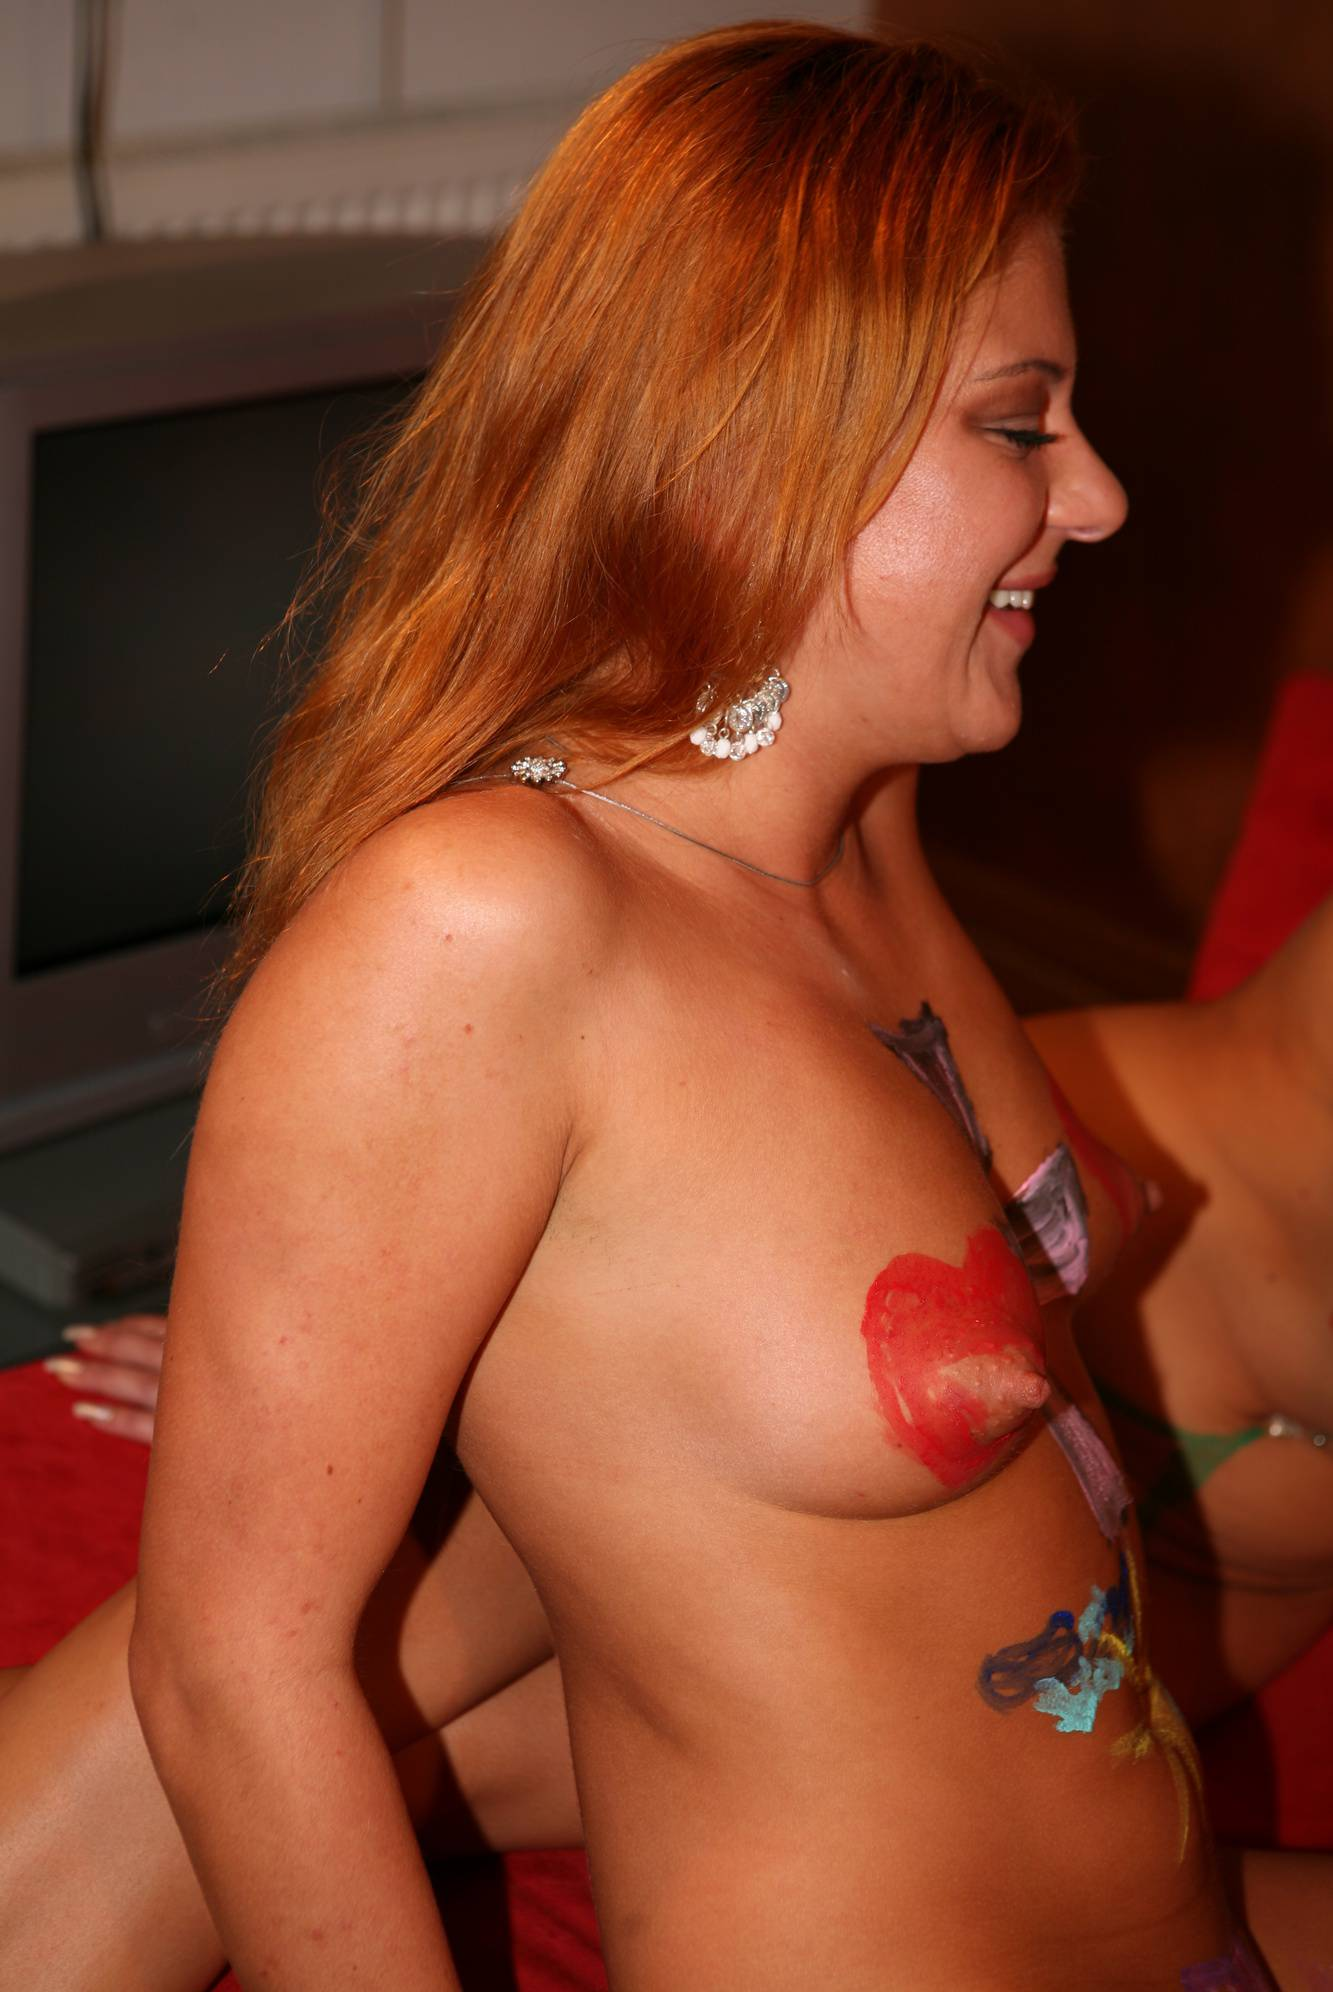 Pure Nudism Images Indoor Body-Painting Girls - 1